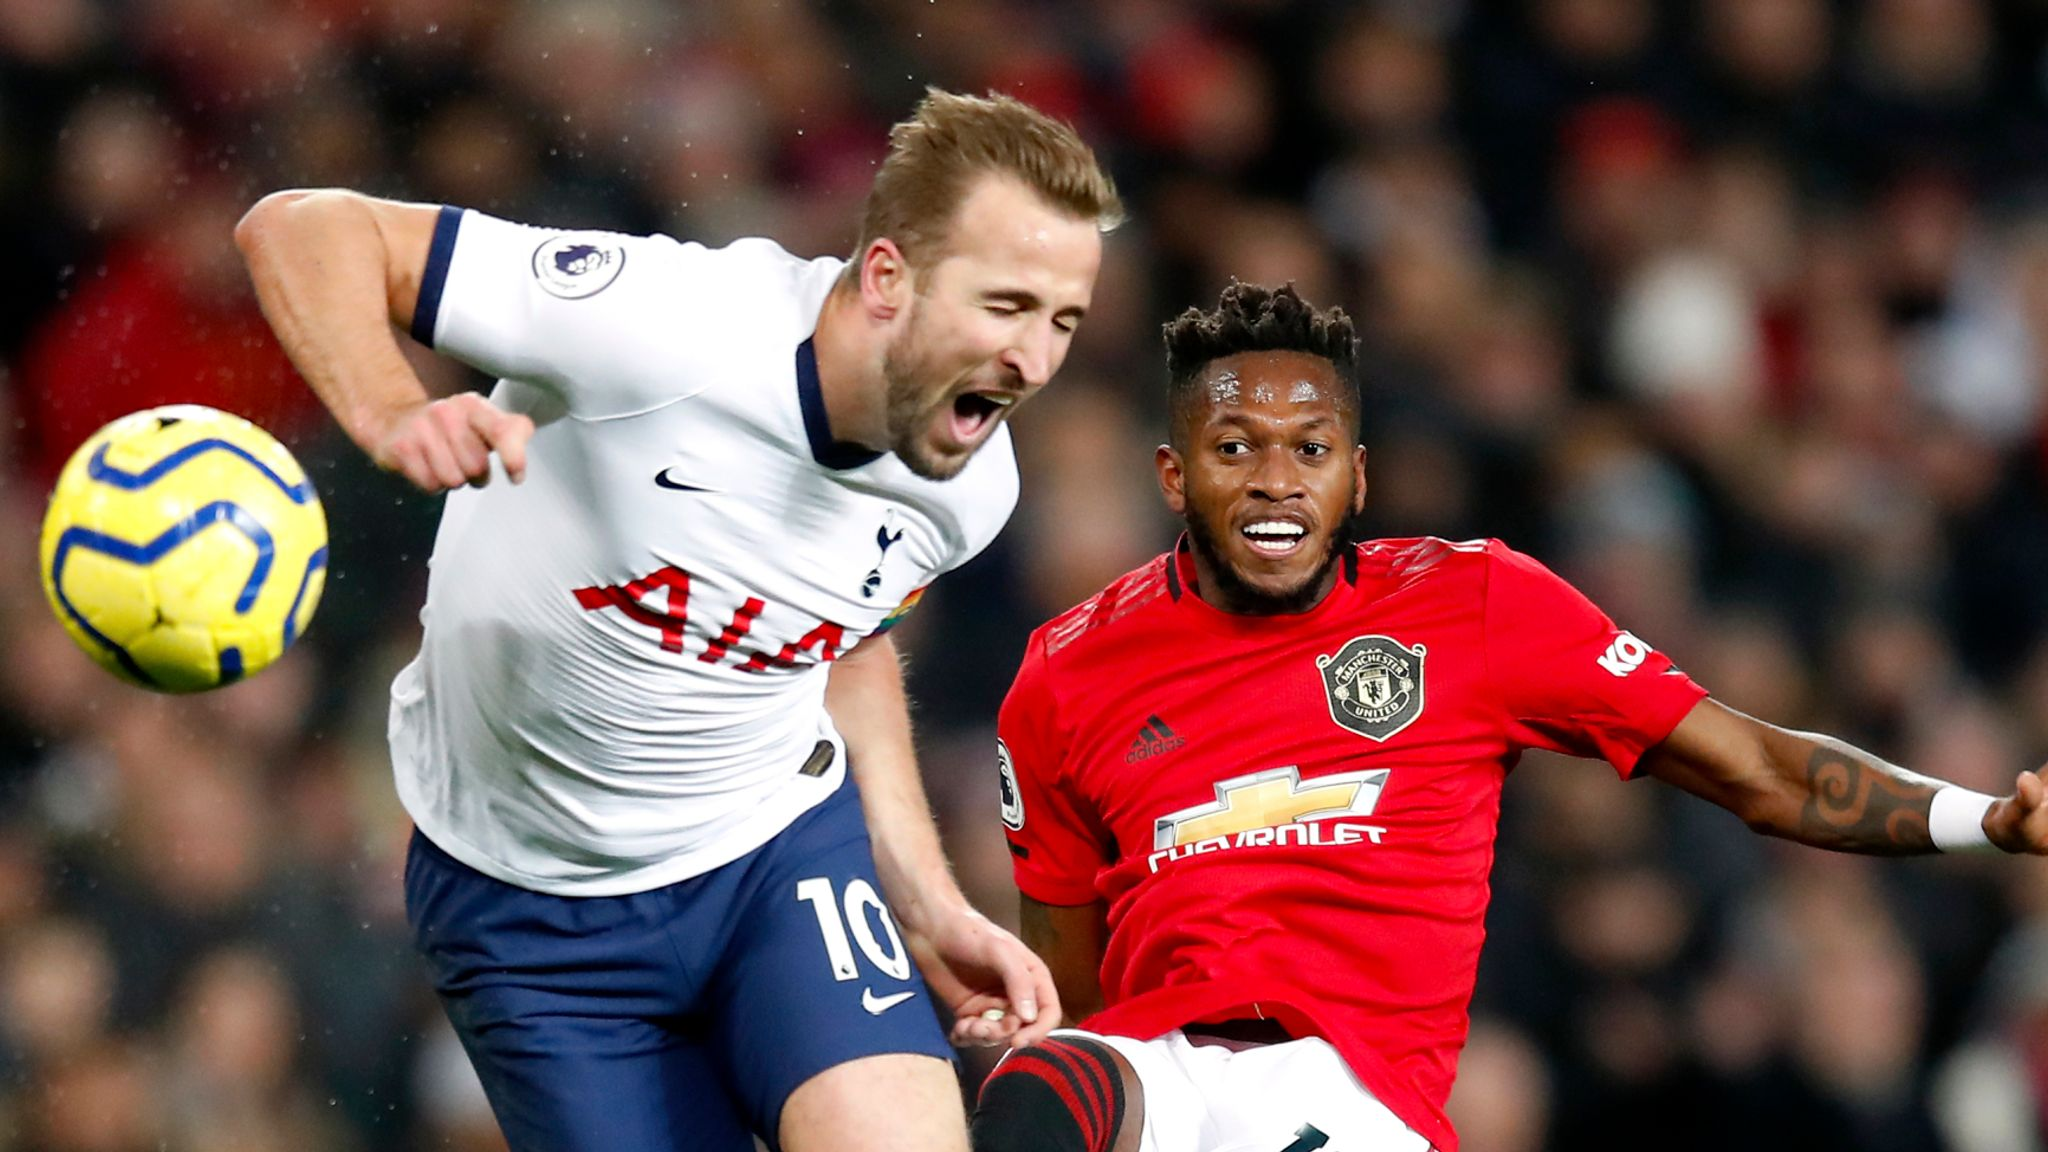 Manchester United 2-1 Tottenham: Player ratings